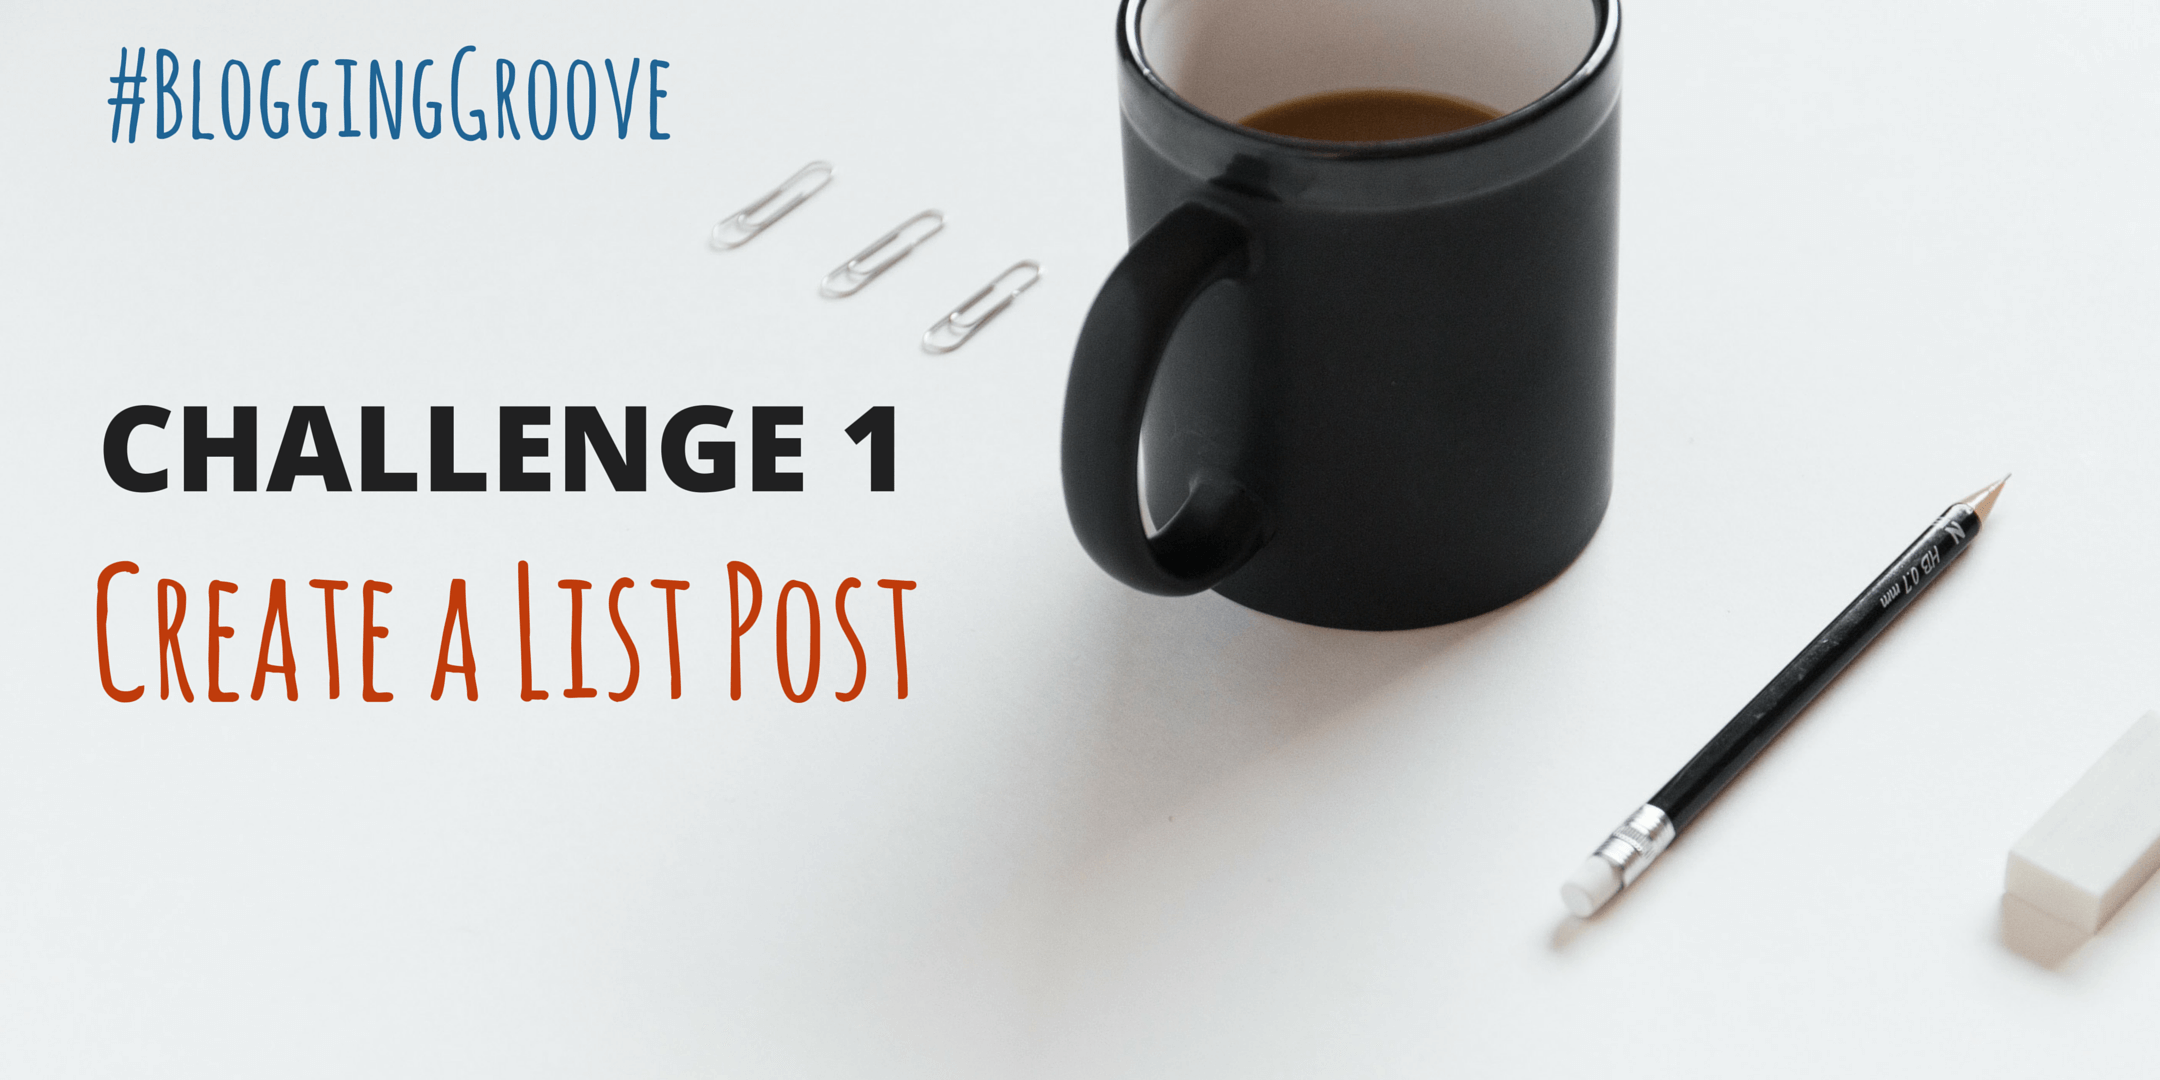 CHALLENGE 1 CREATE A LIST POST